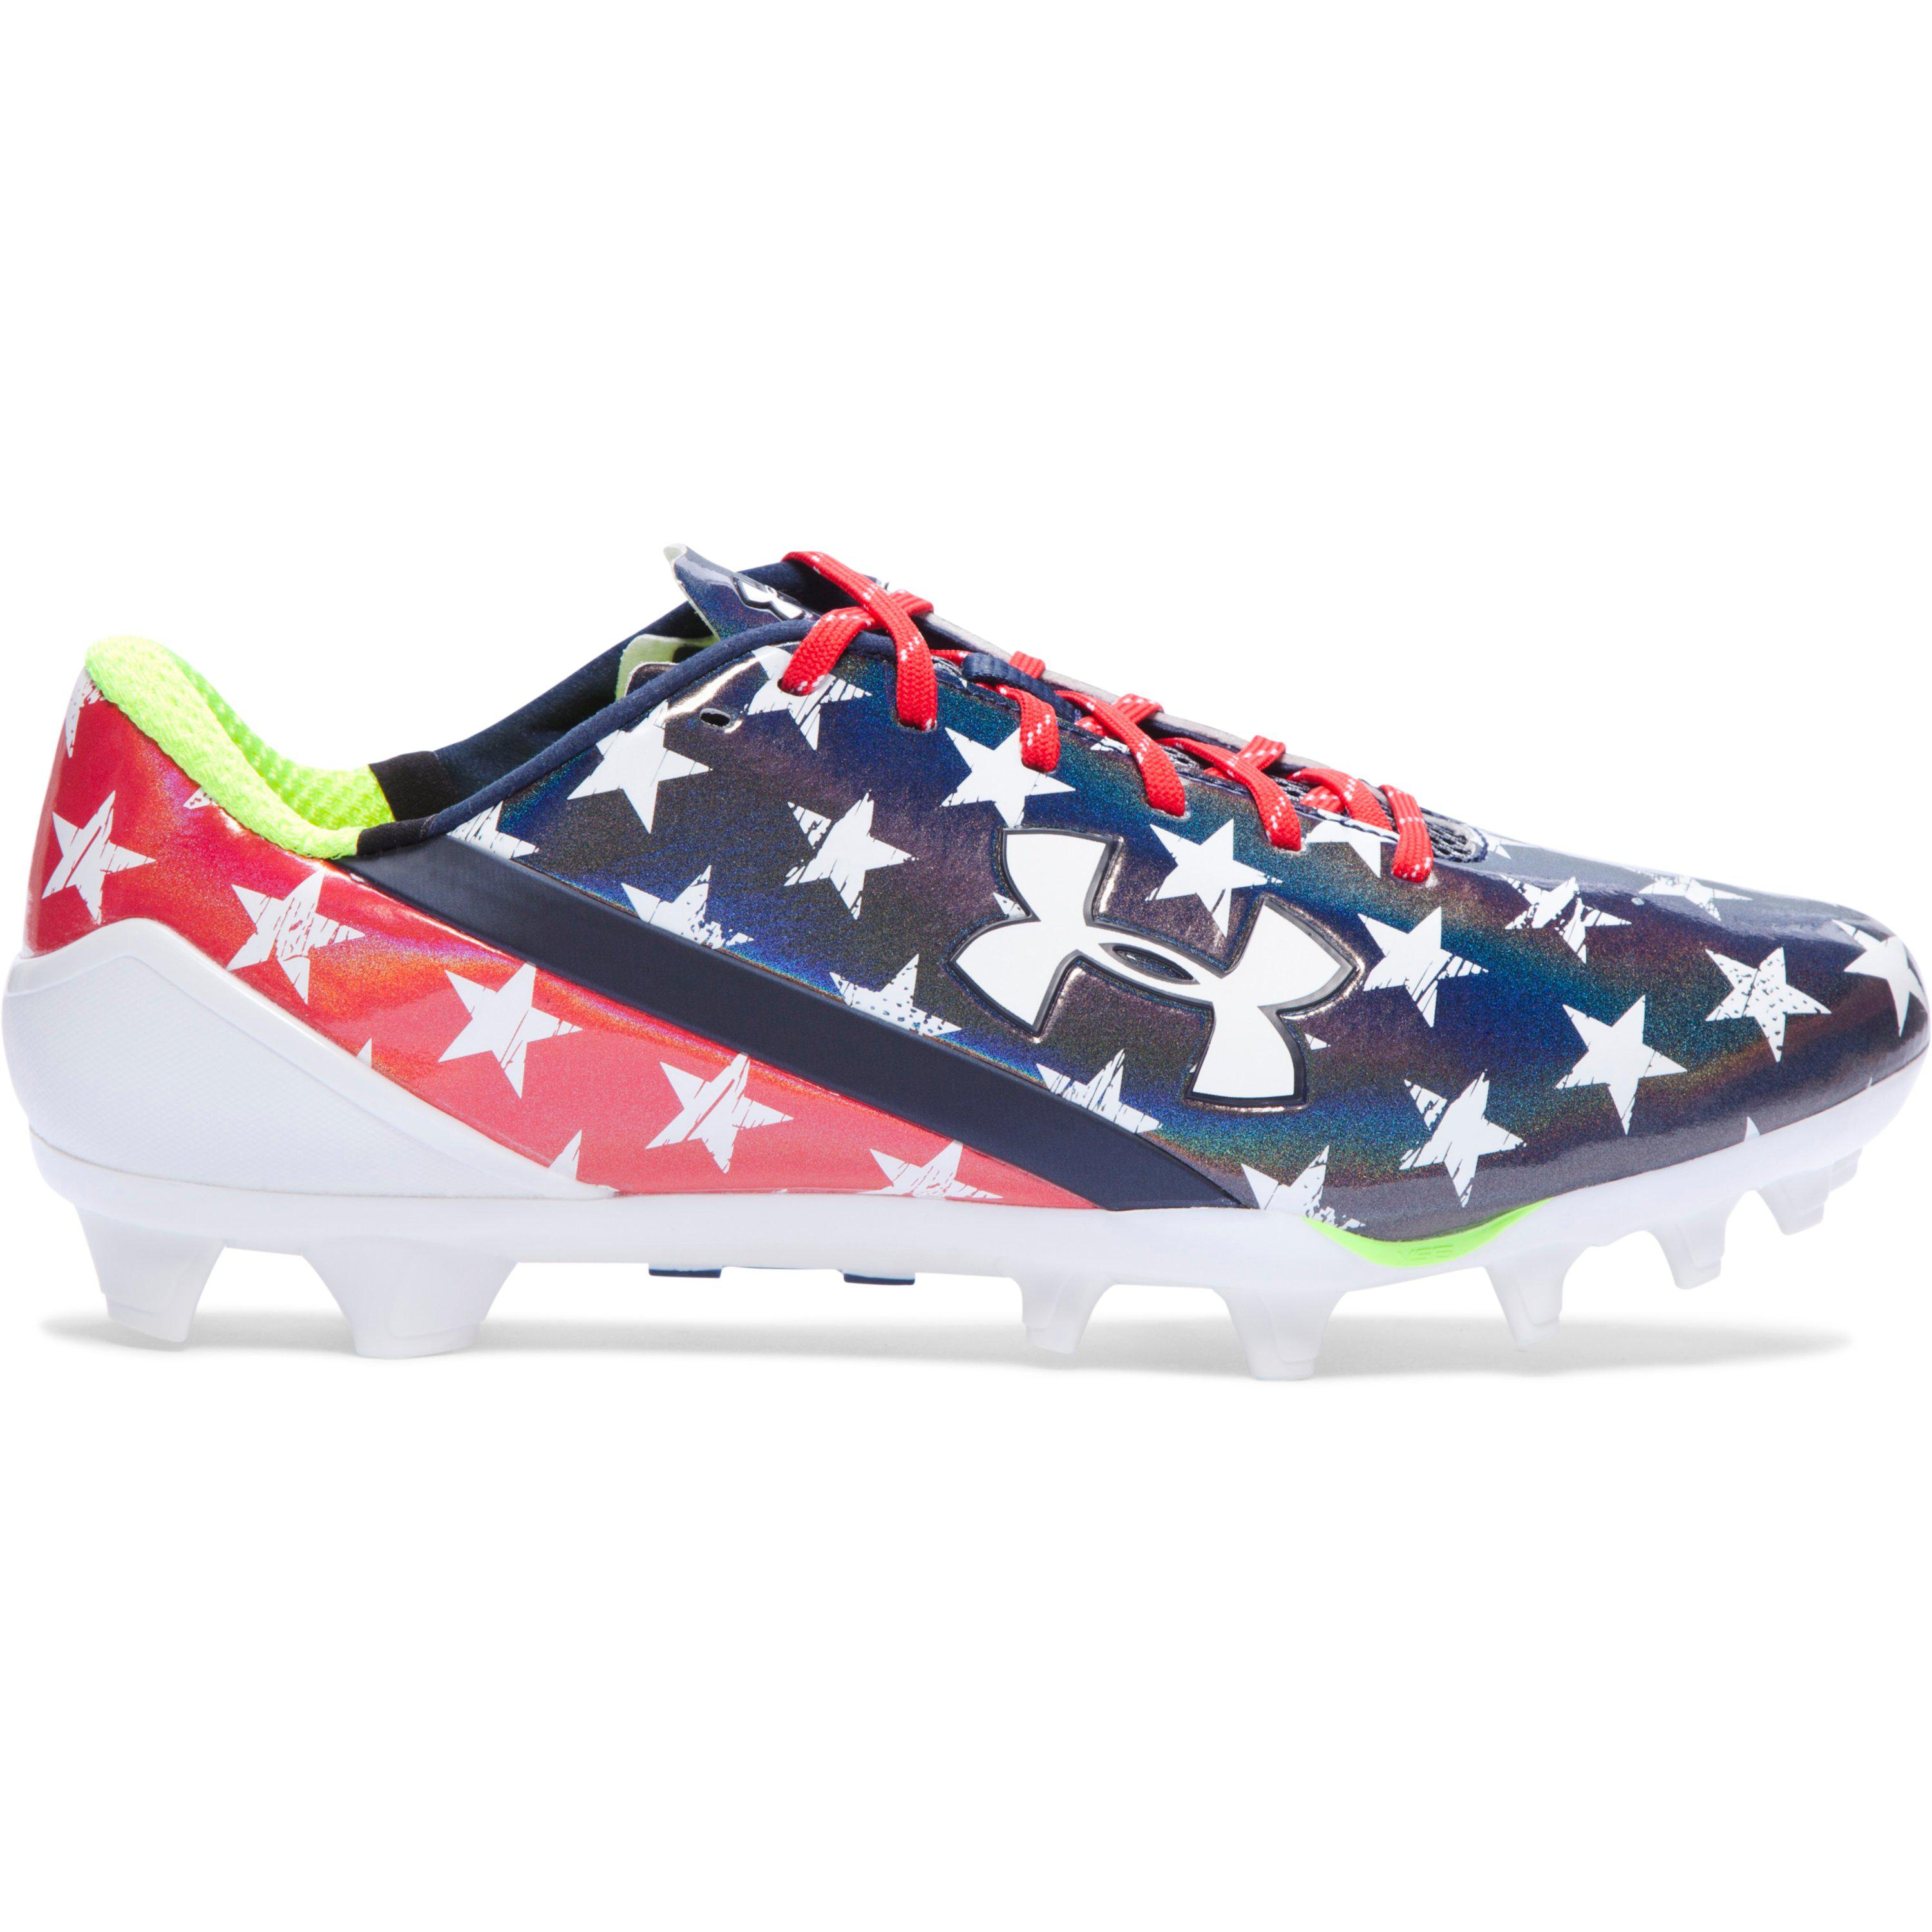 520c1fb0f Under Armour Men s Ua Spotlight Football Cleats – Limited Edition in ...